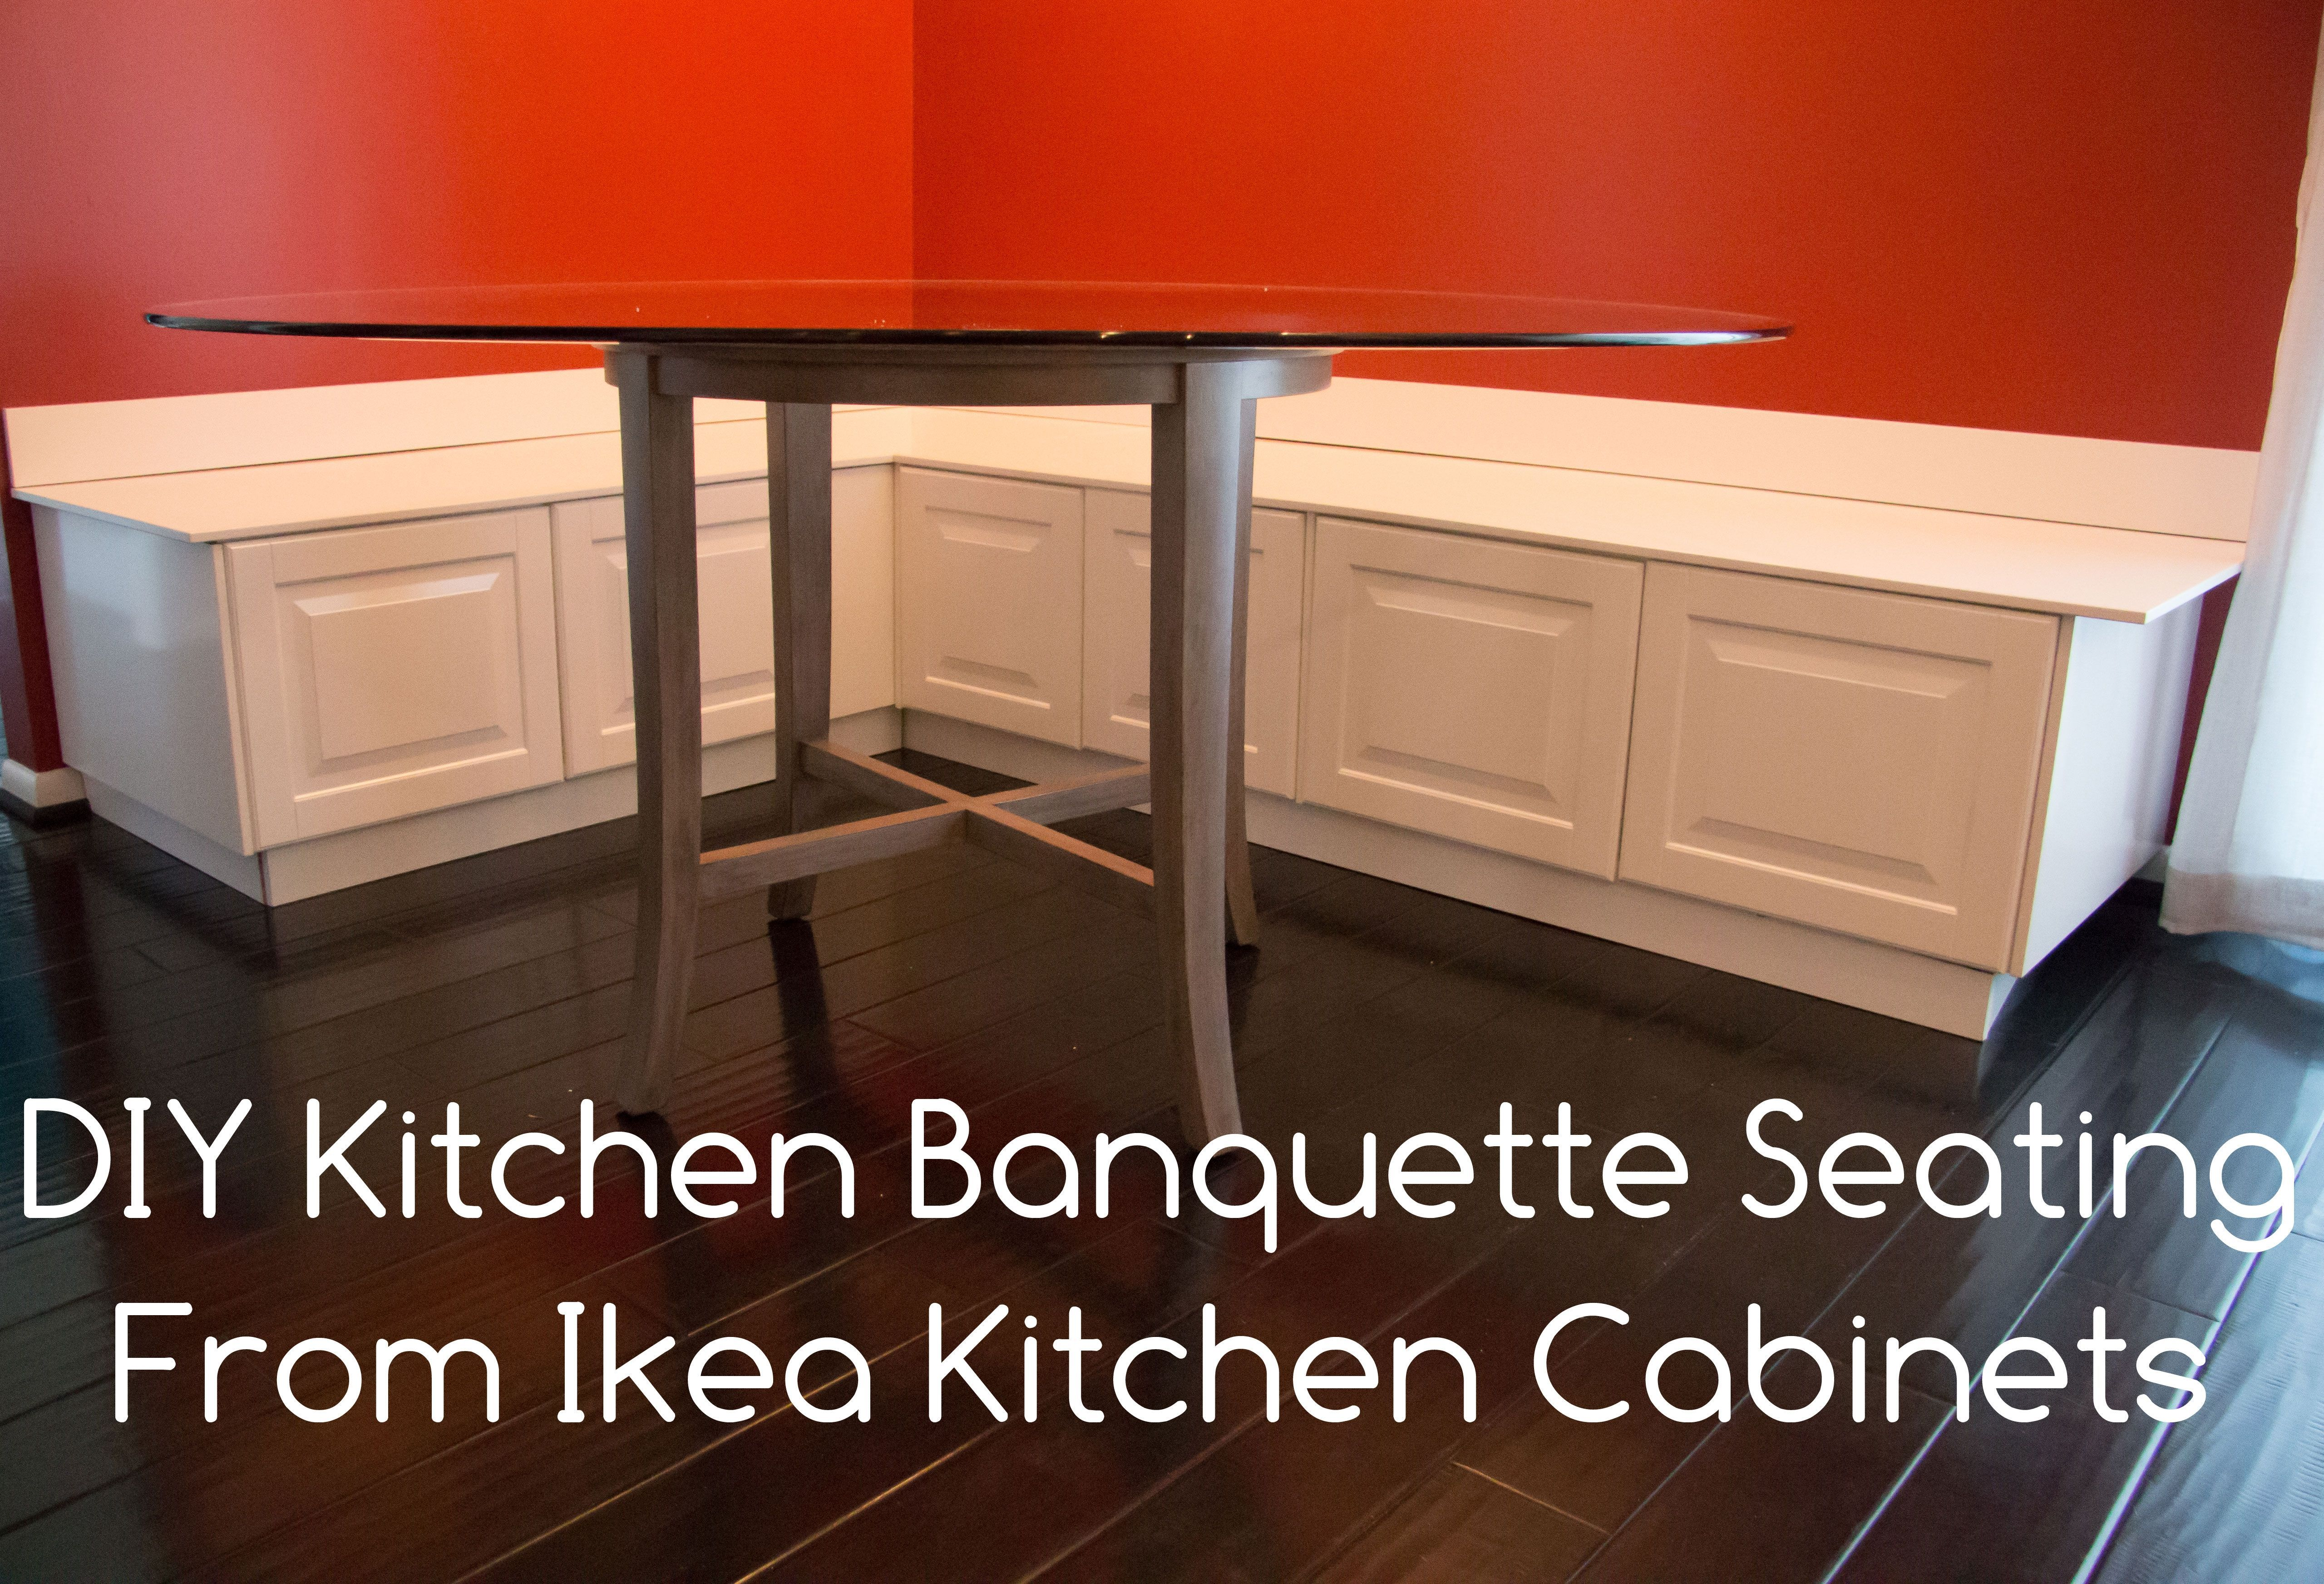 Diy Kitchen Banquette Seating Using Ikea Cabinets Salle A